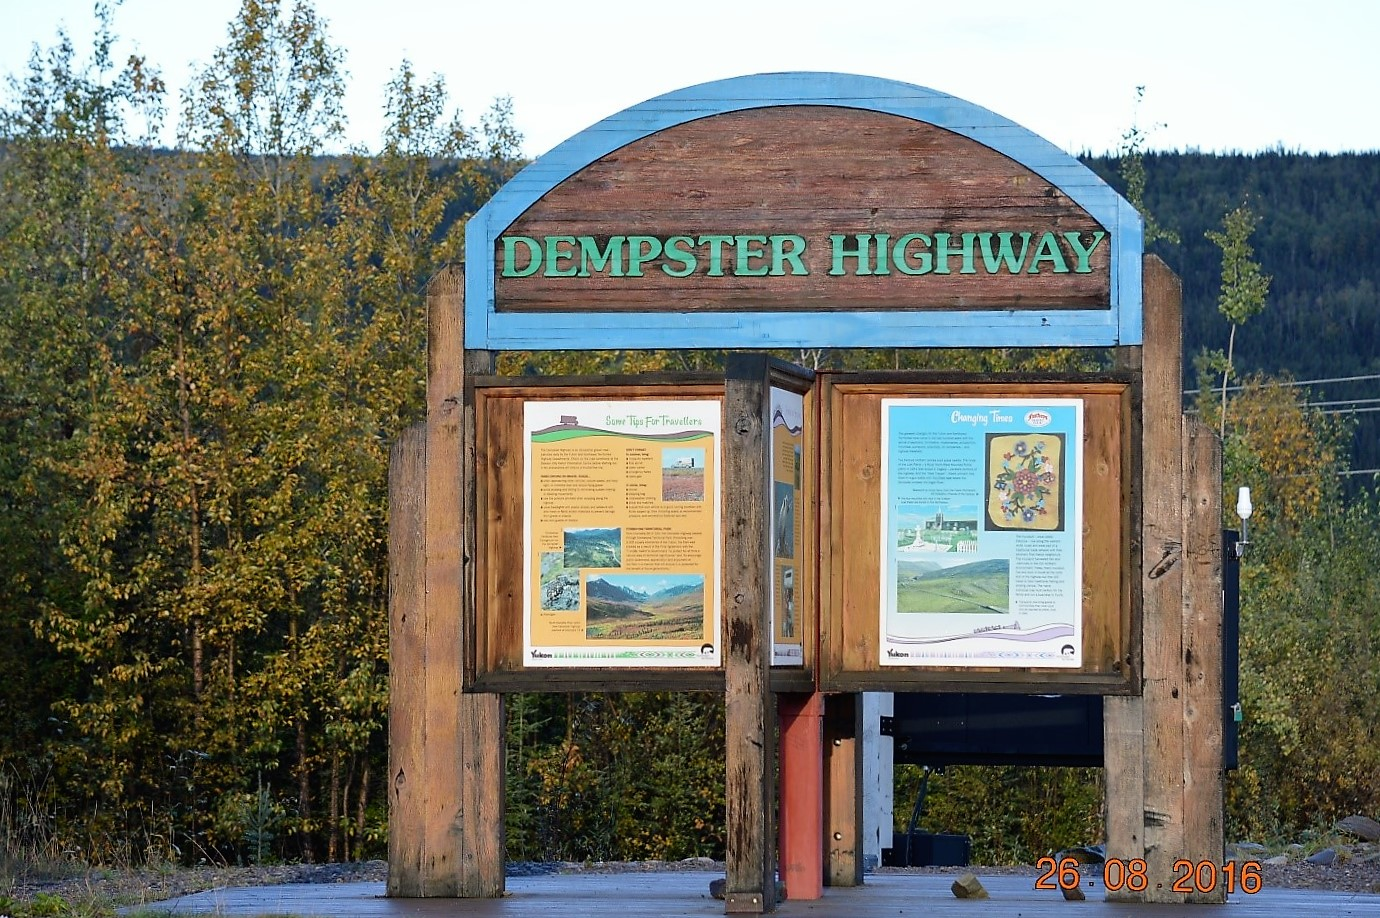 National Treasure #156: Dempster Highway